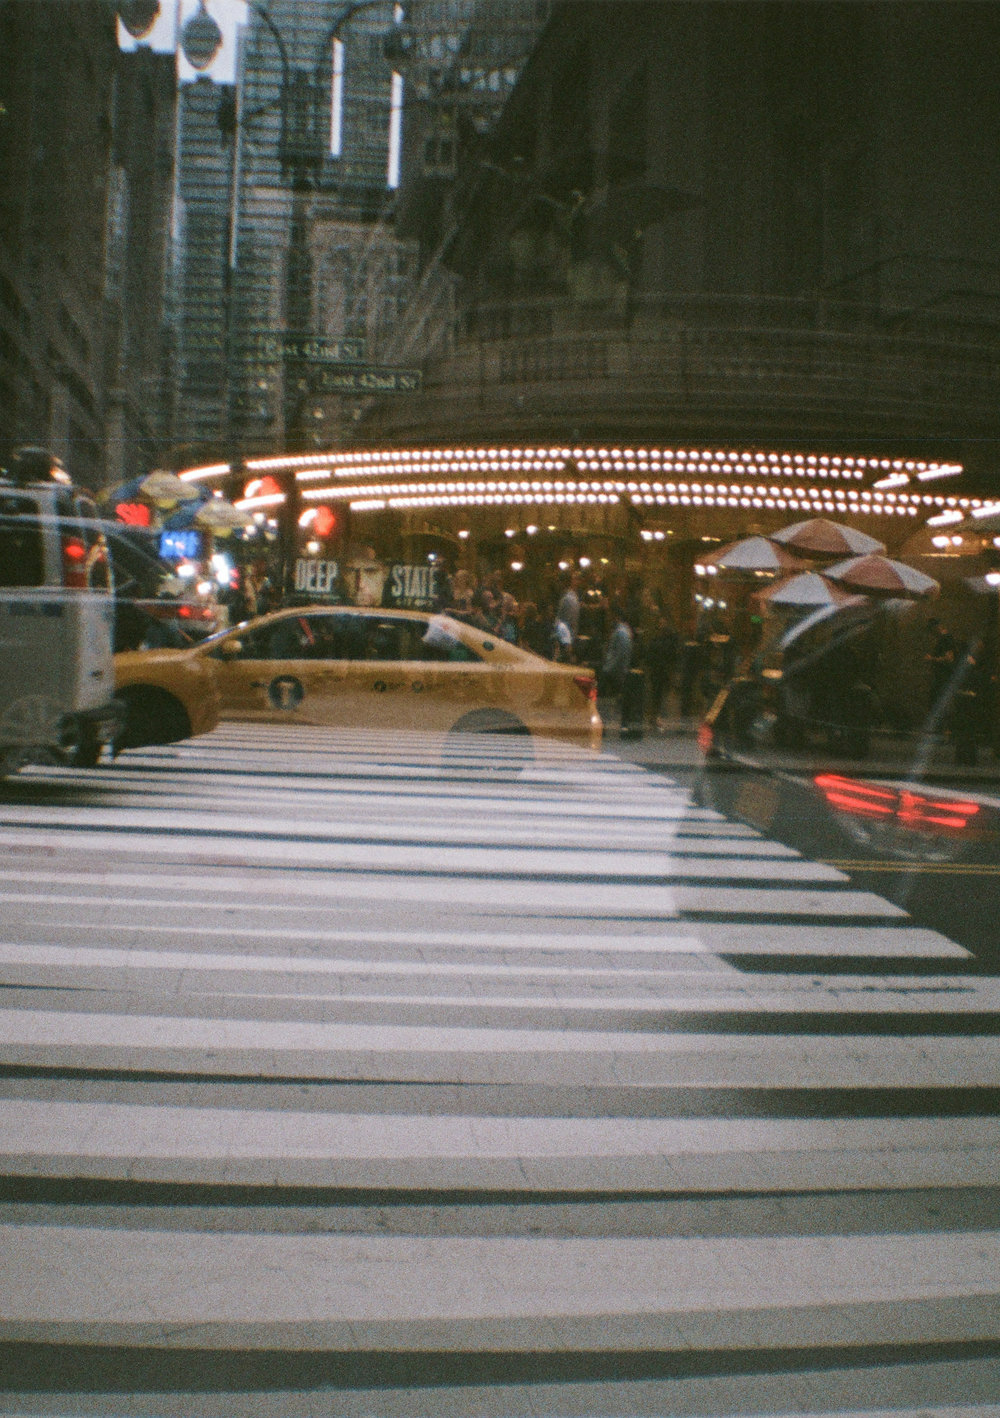 Grand Central - 35mm - Diana Mini - Fujifilm Superia 400 - double exposure